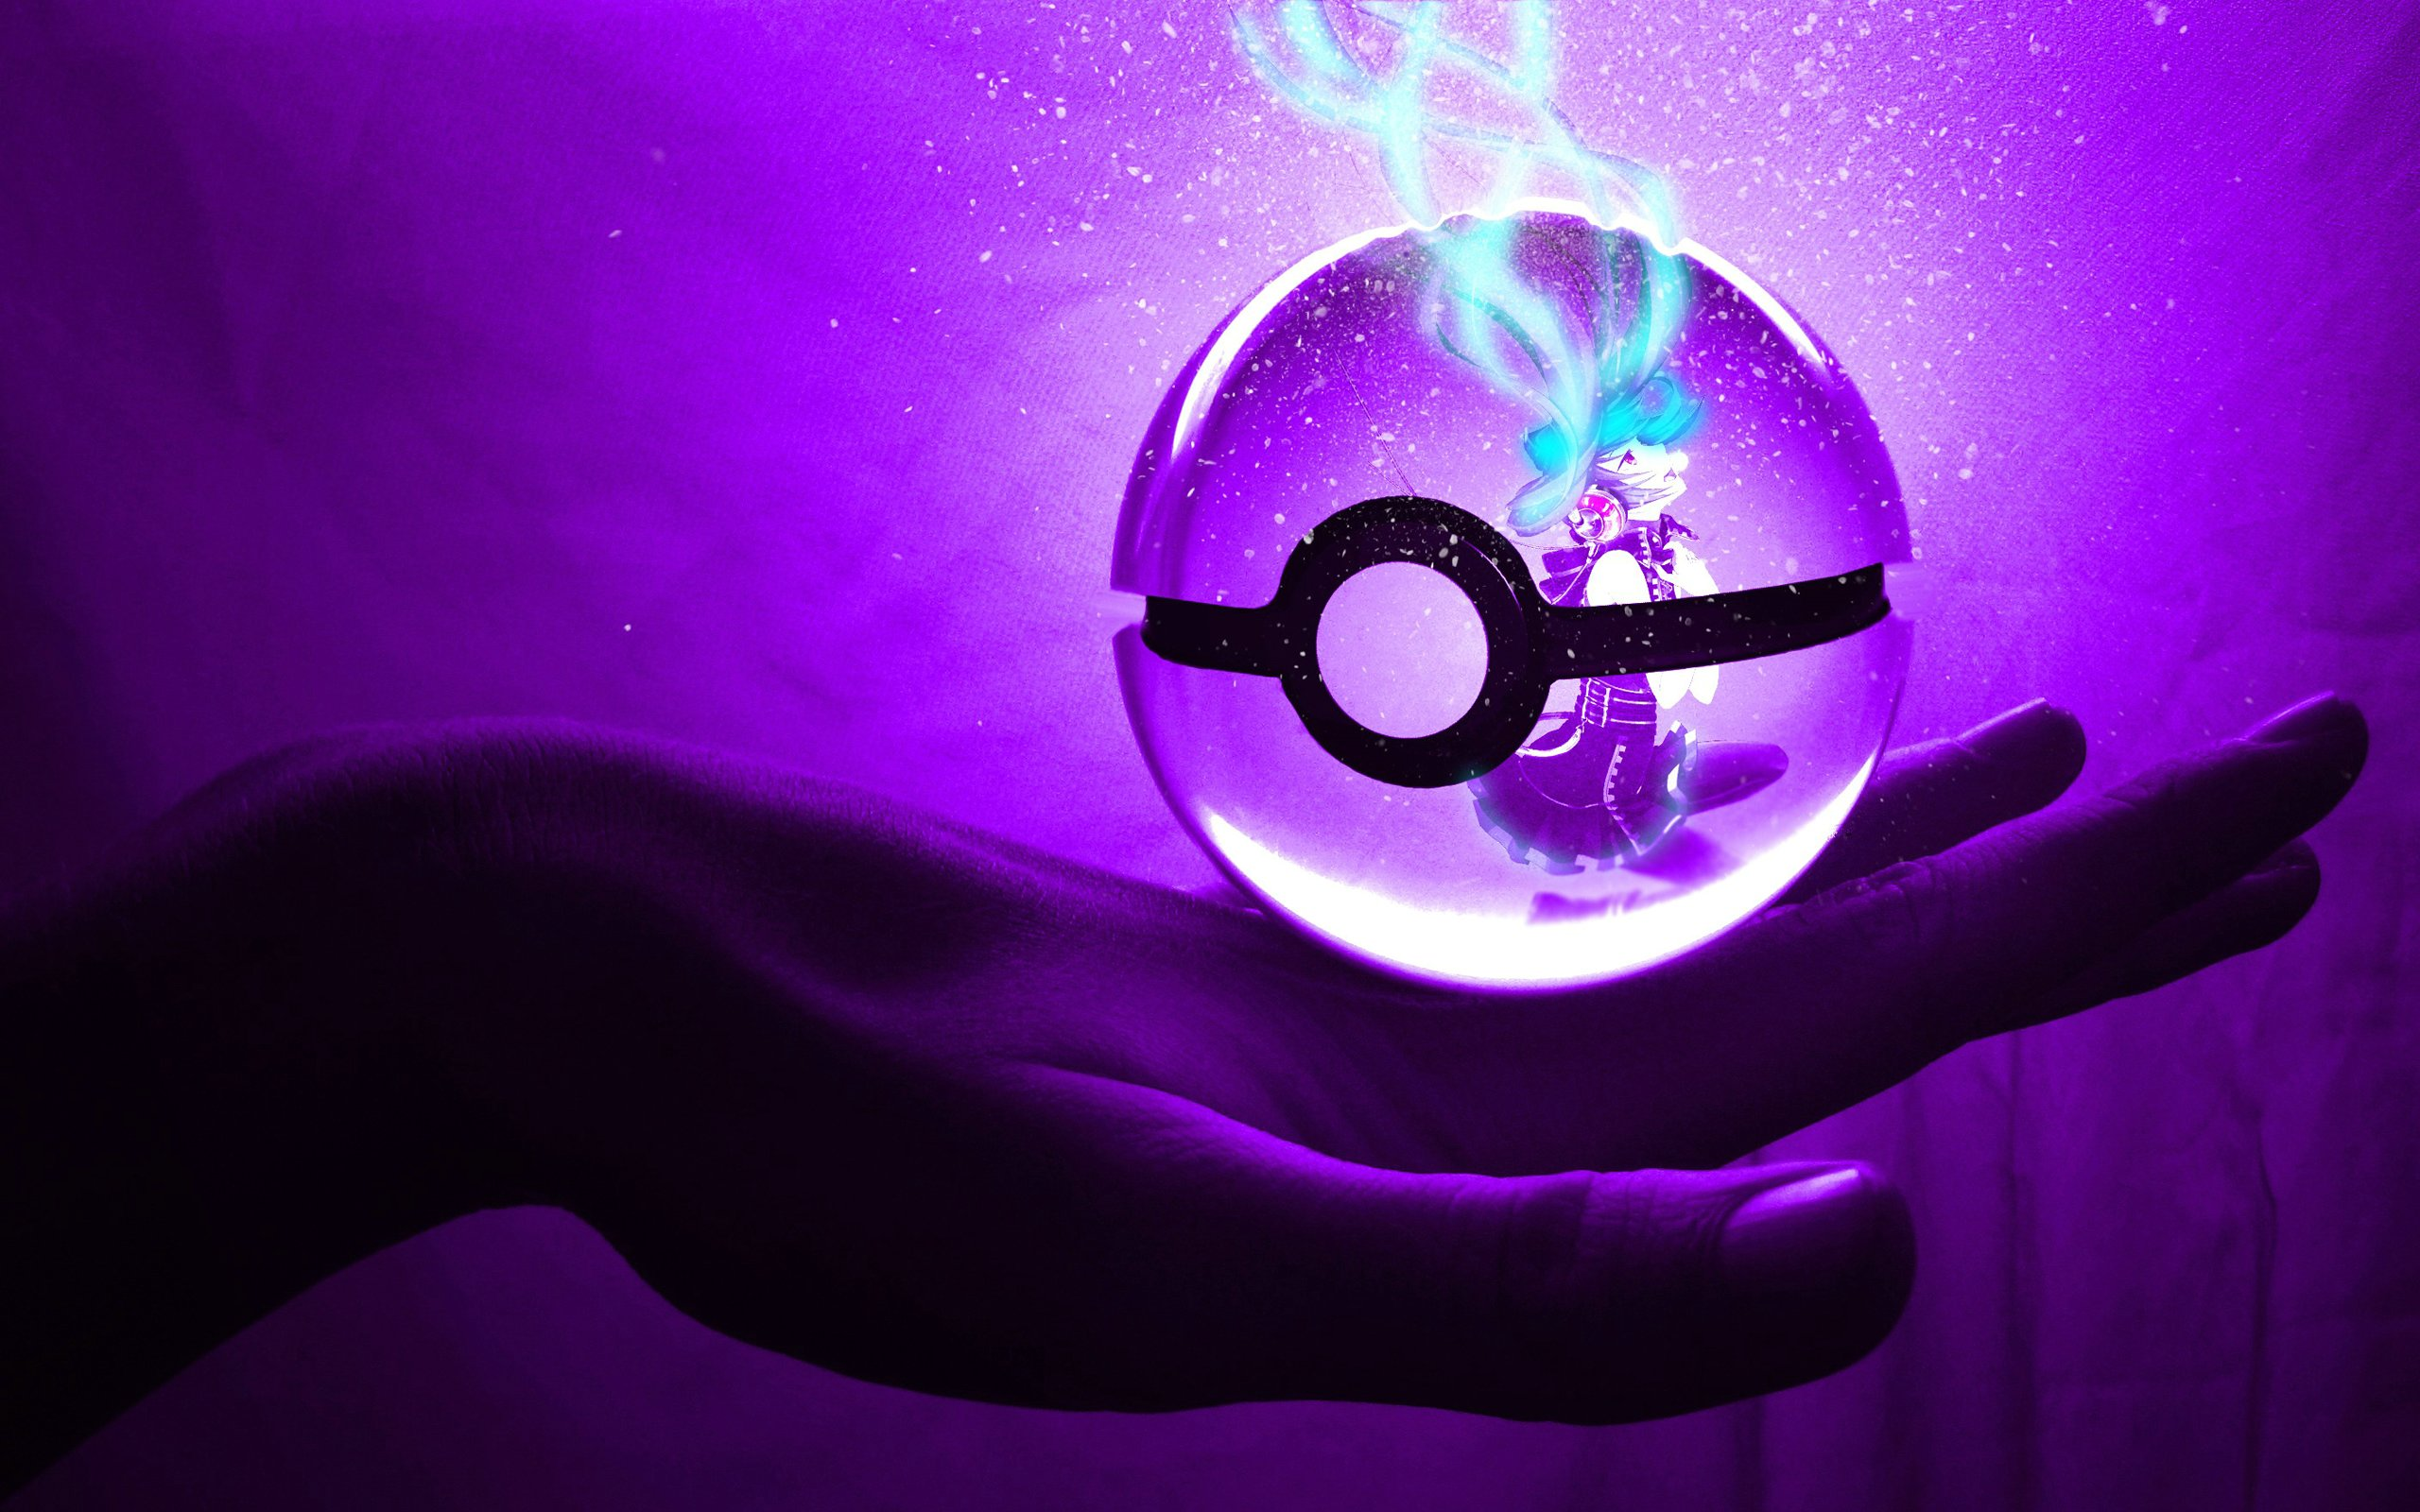 Hd pokeball wallpapers wallpapersafari - Download anime wallpaper hd for android ...